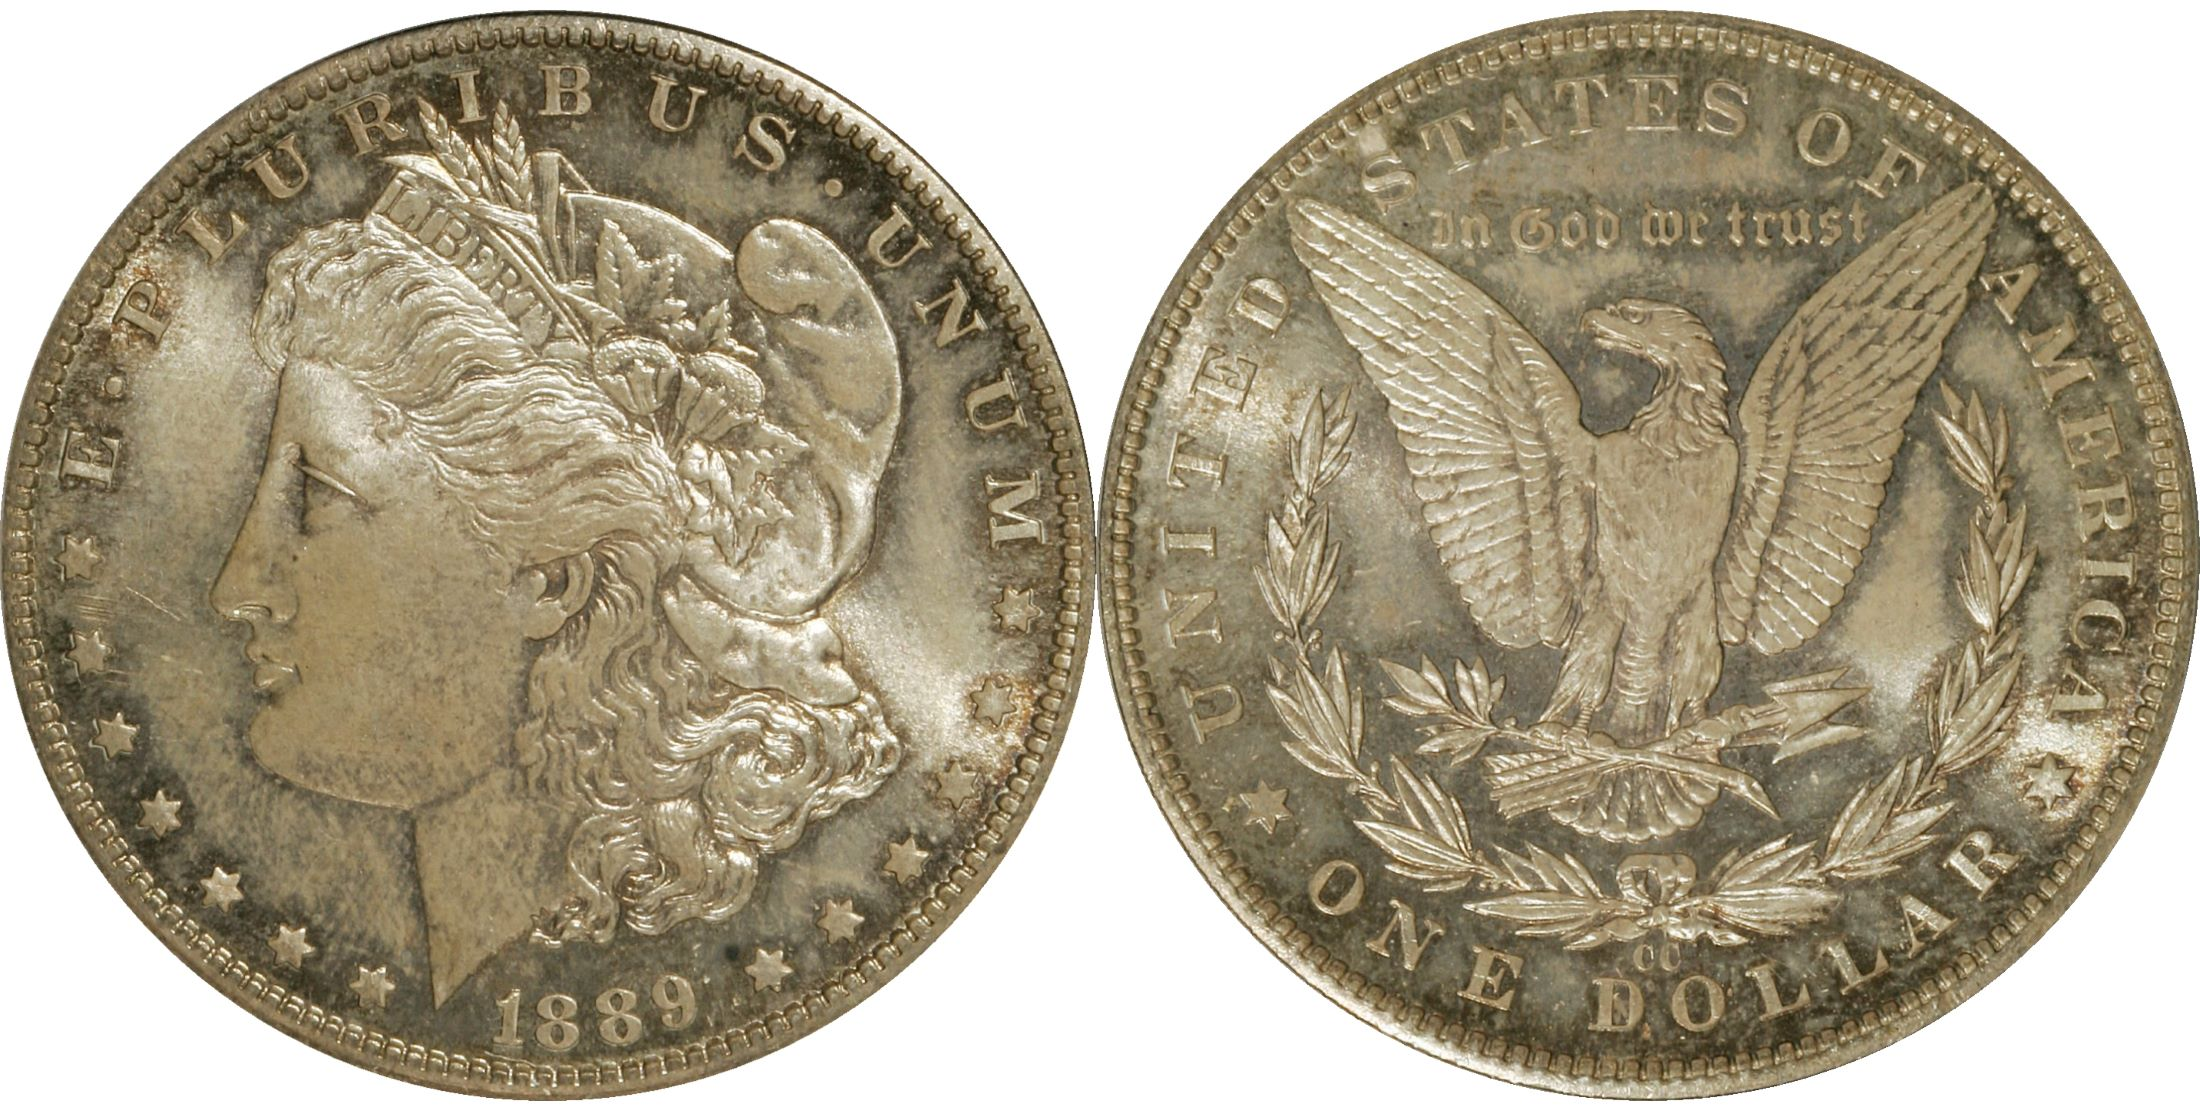 "PCGS MS-68<BR>ex Eliasberg-Jack Lee<BR>Image courtesy of <a href=""http://www.ha.com"" target=""_blank"">Heritage Numismatic Auctions</a>"